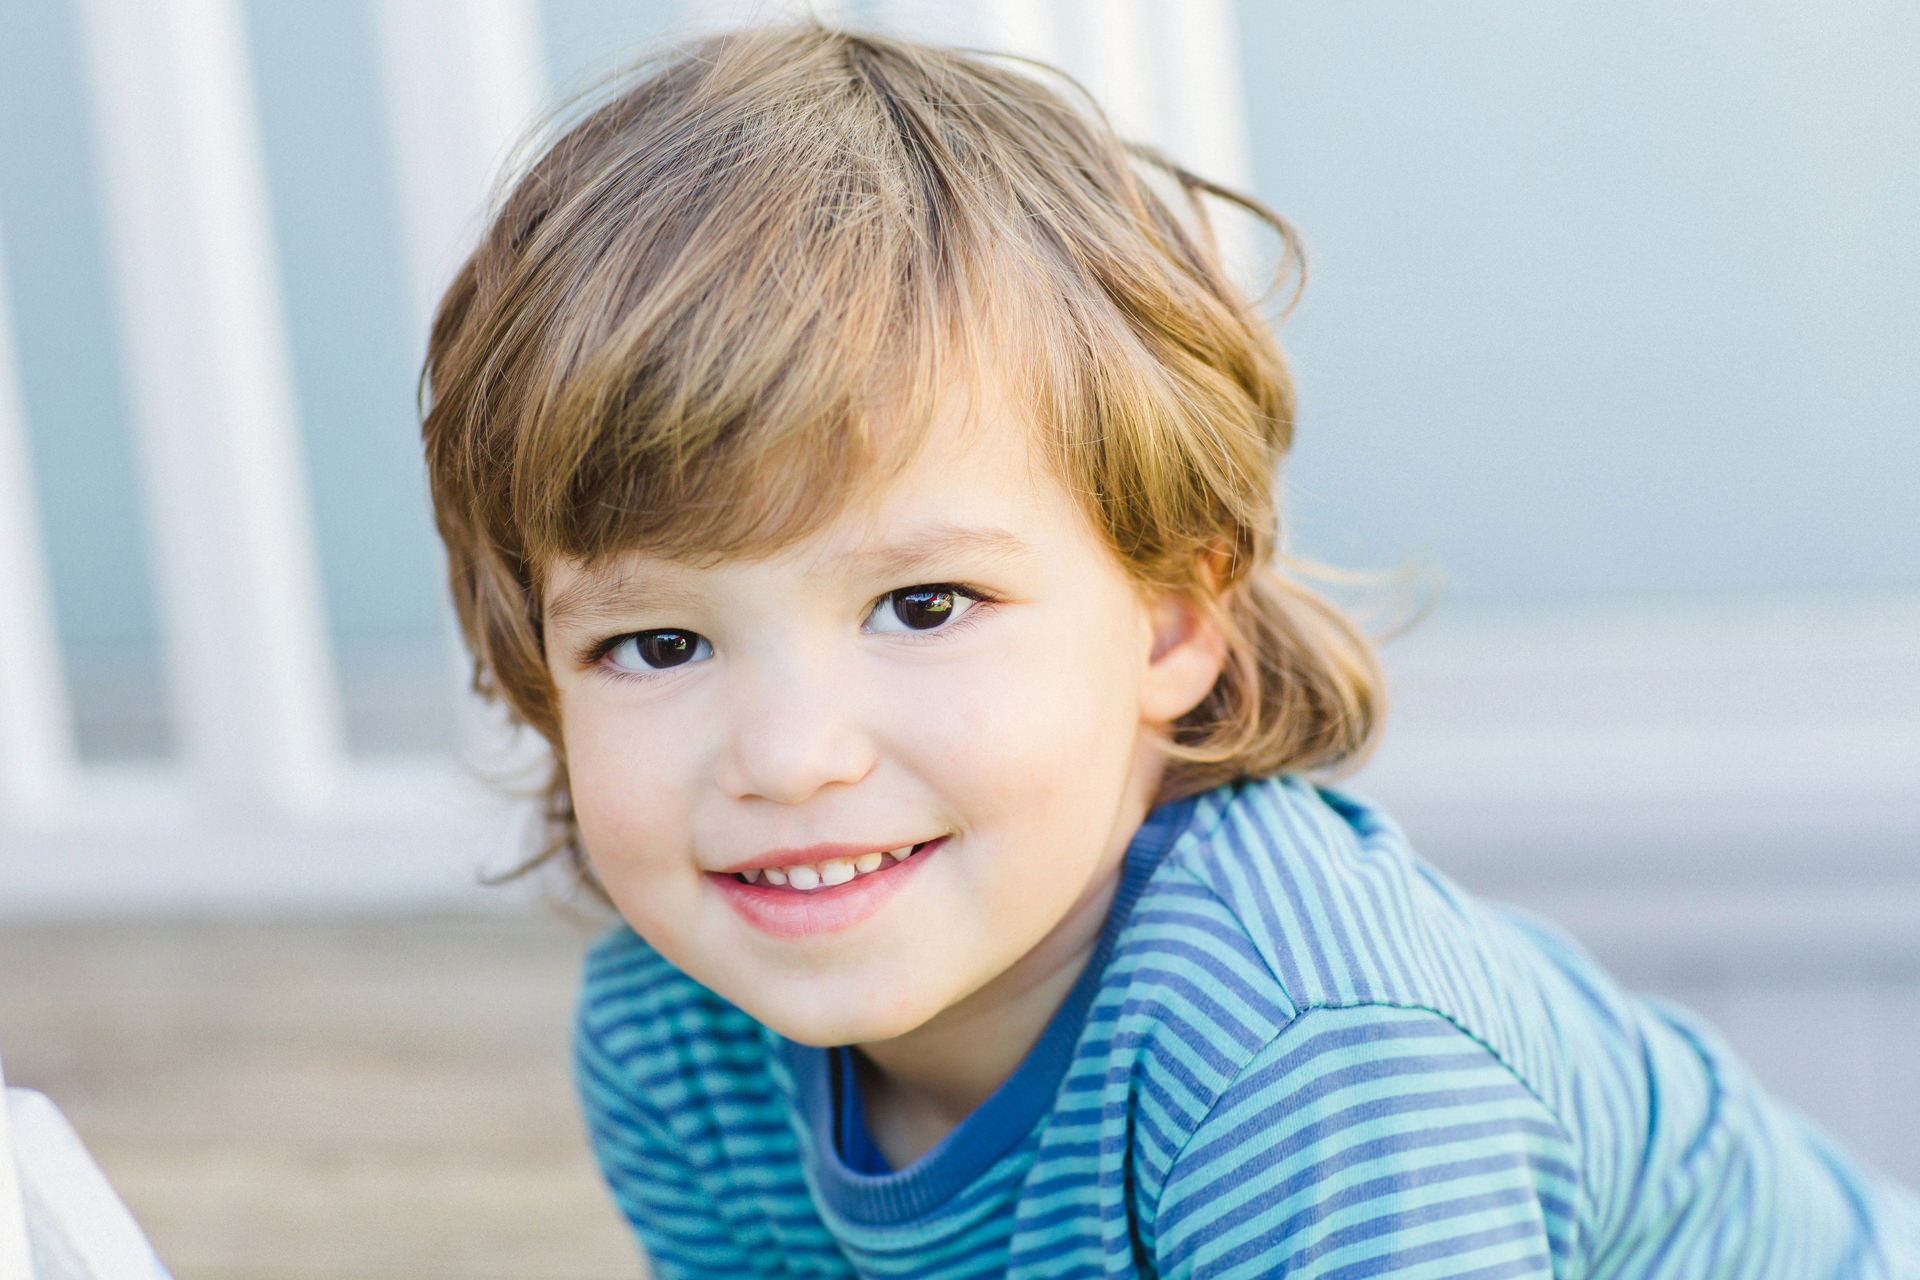 a little boy with brown eyes wearing a blue striped top and smiling at the camera